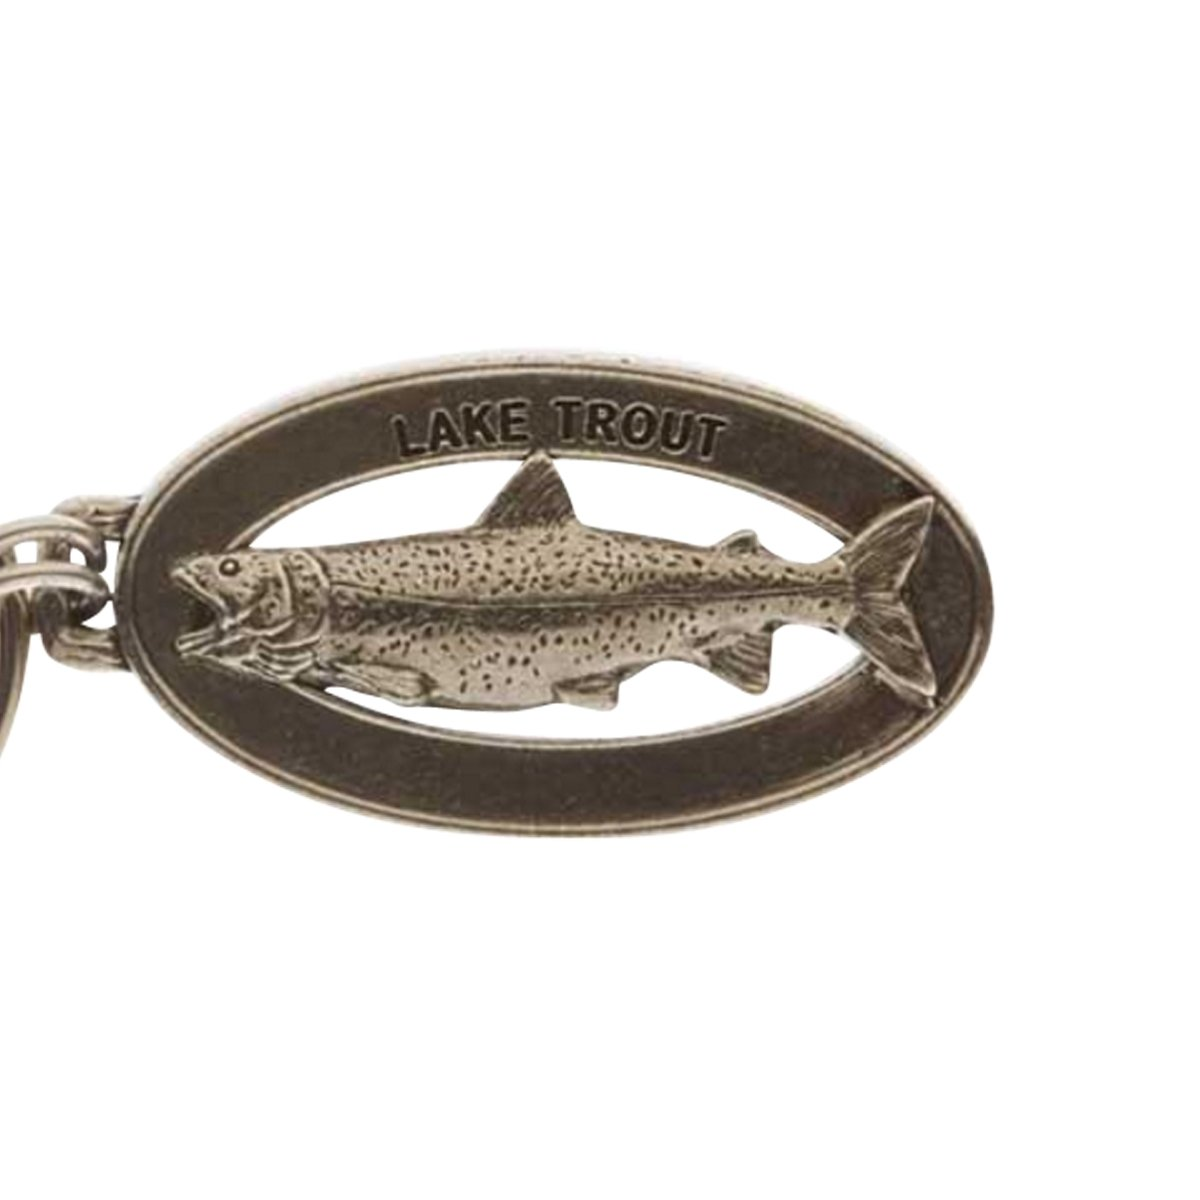 Creative Pewter Designs, Pewter Lake Trout Key Chain, Antiqued Finish, FK019